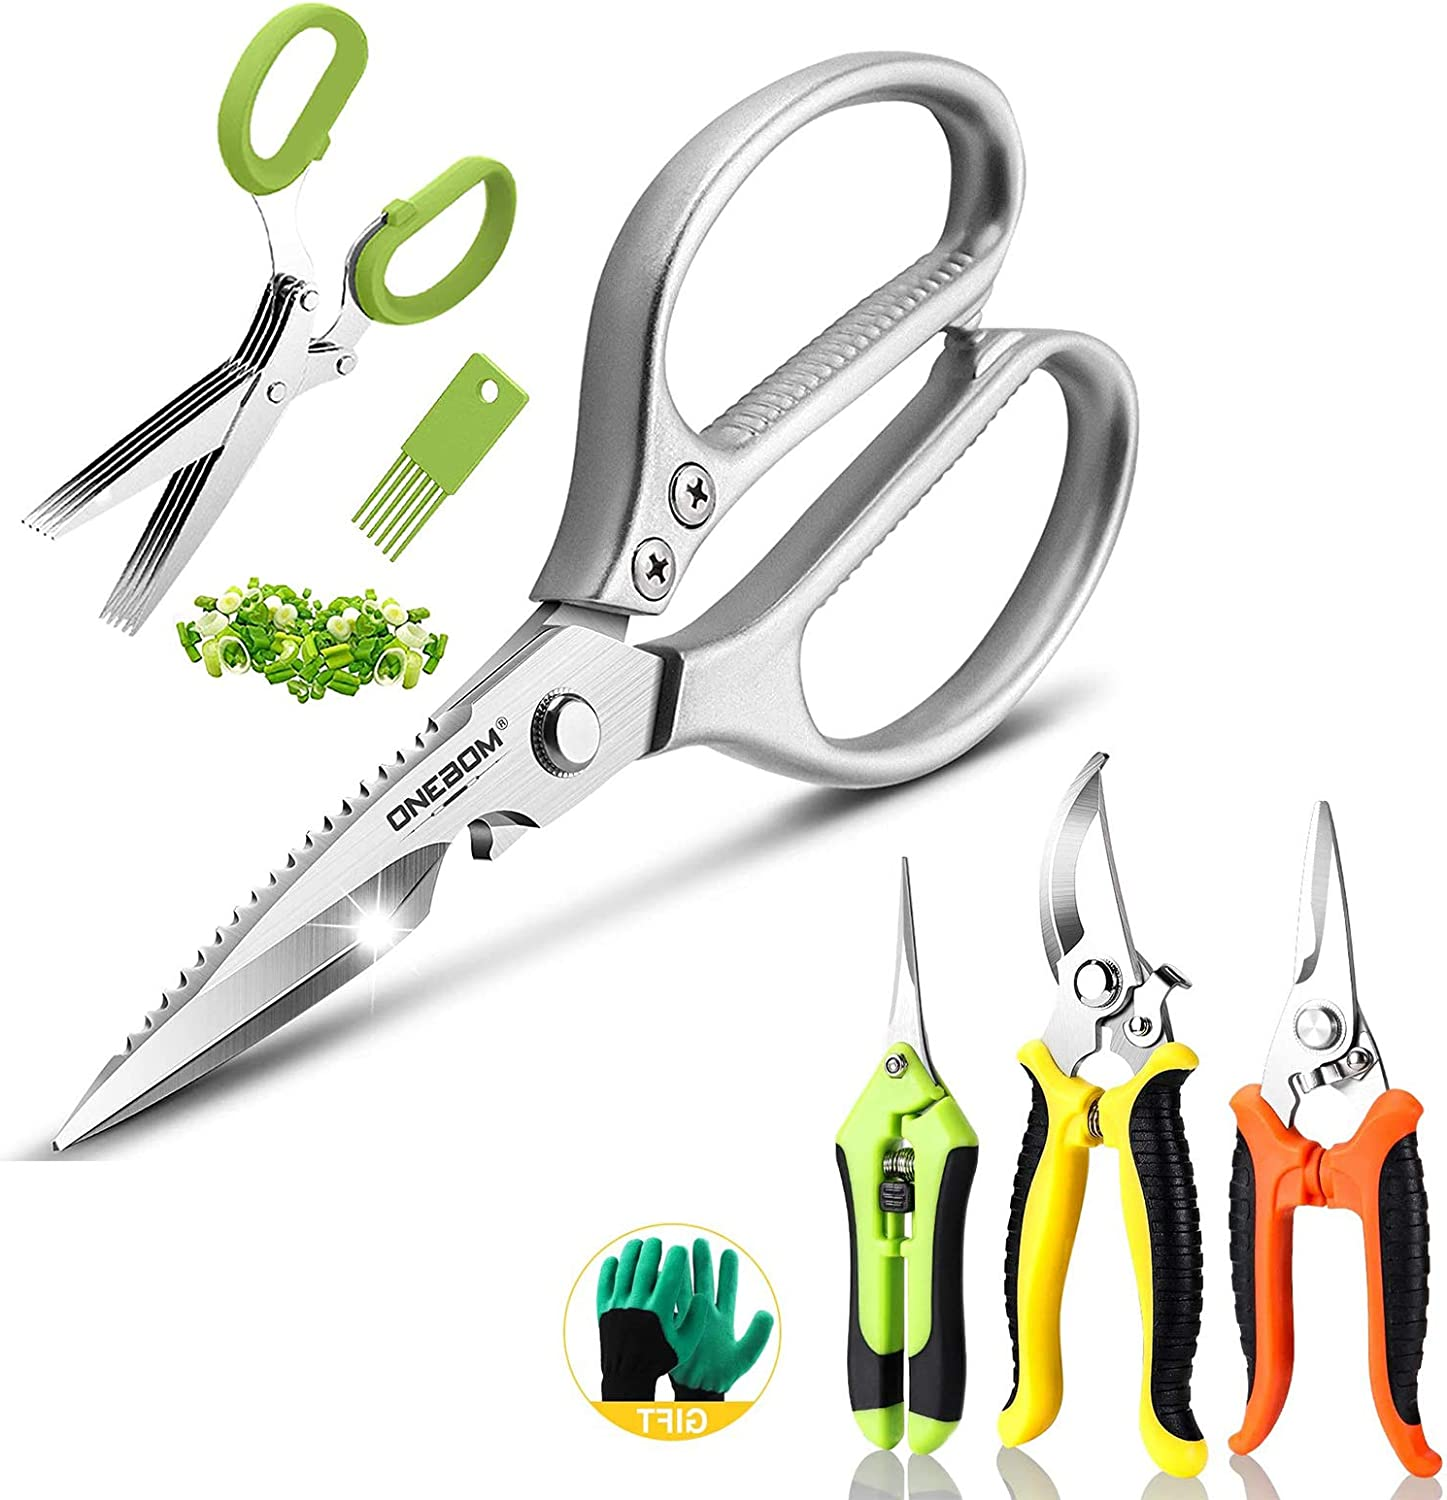 ONEBOM Kitchen Scissors with Herb Shears, Garden Pruning Shears Professional Heavy Duty